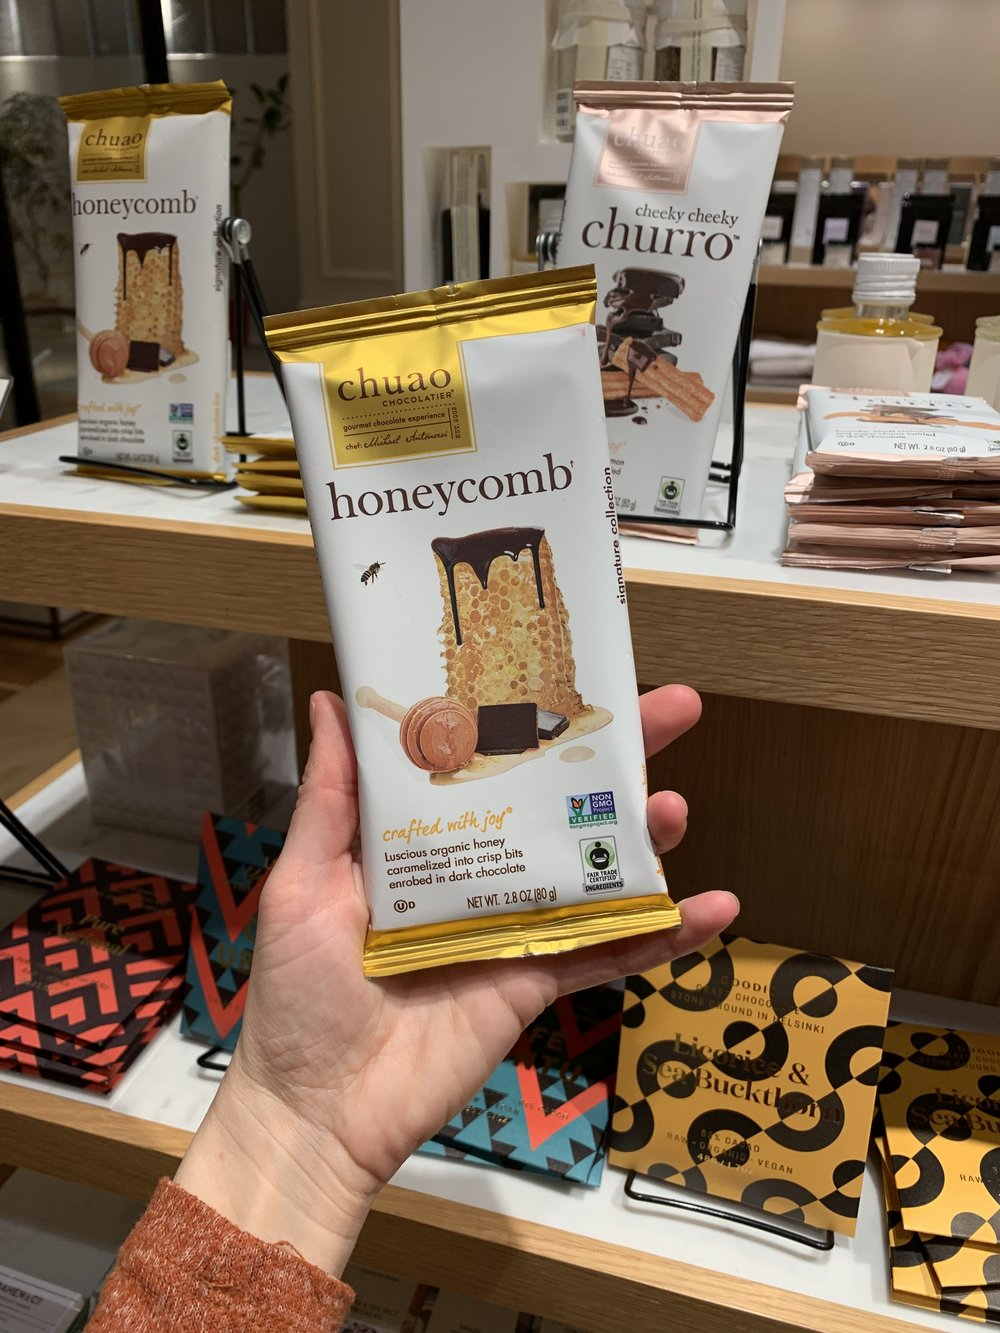 chuao honeycomb Japan